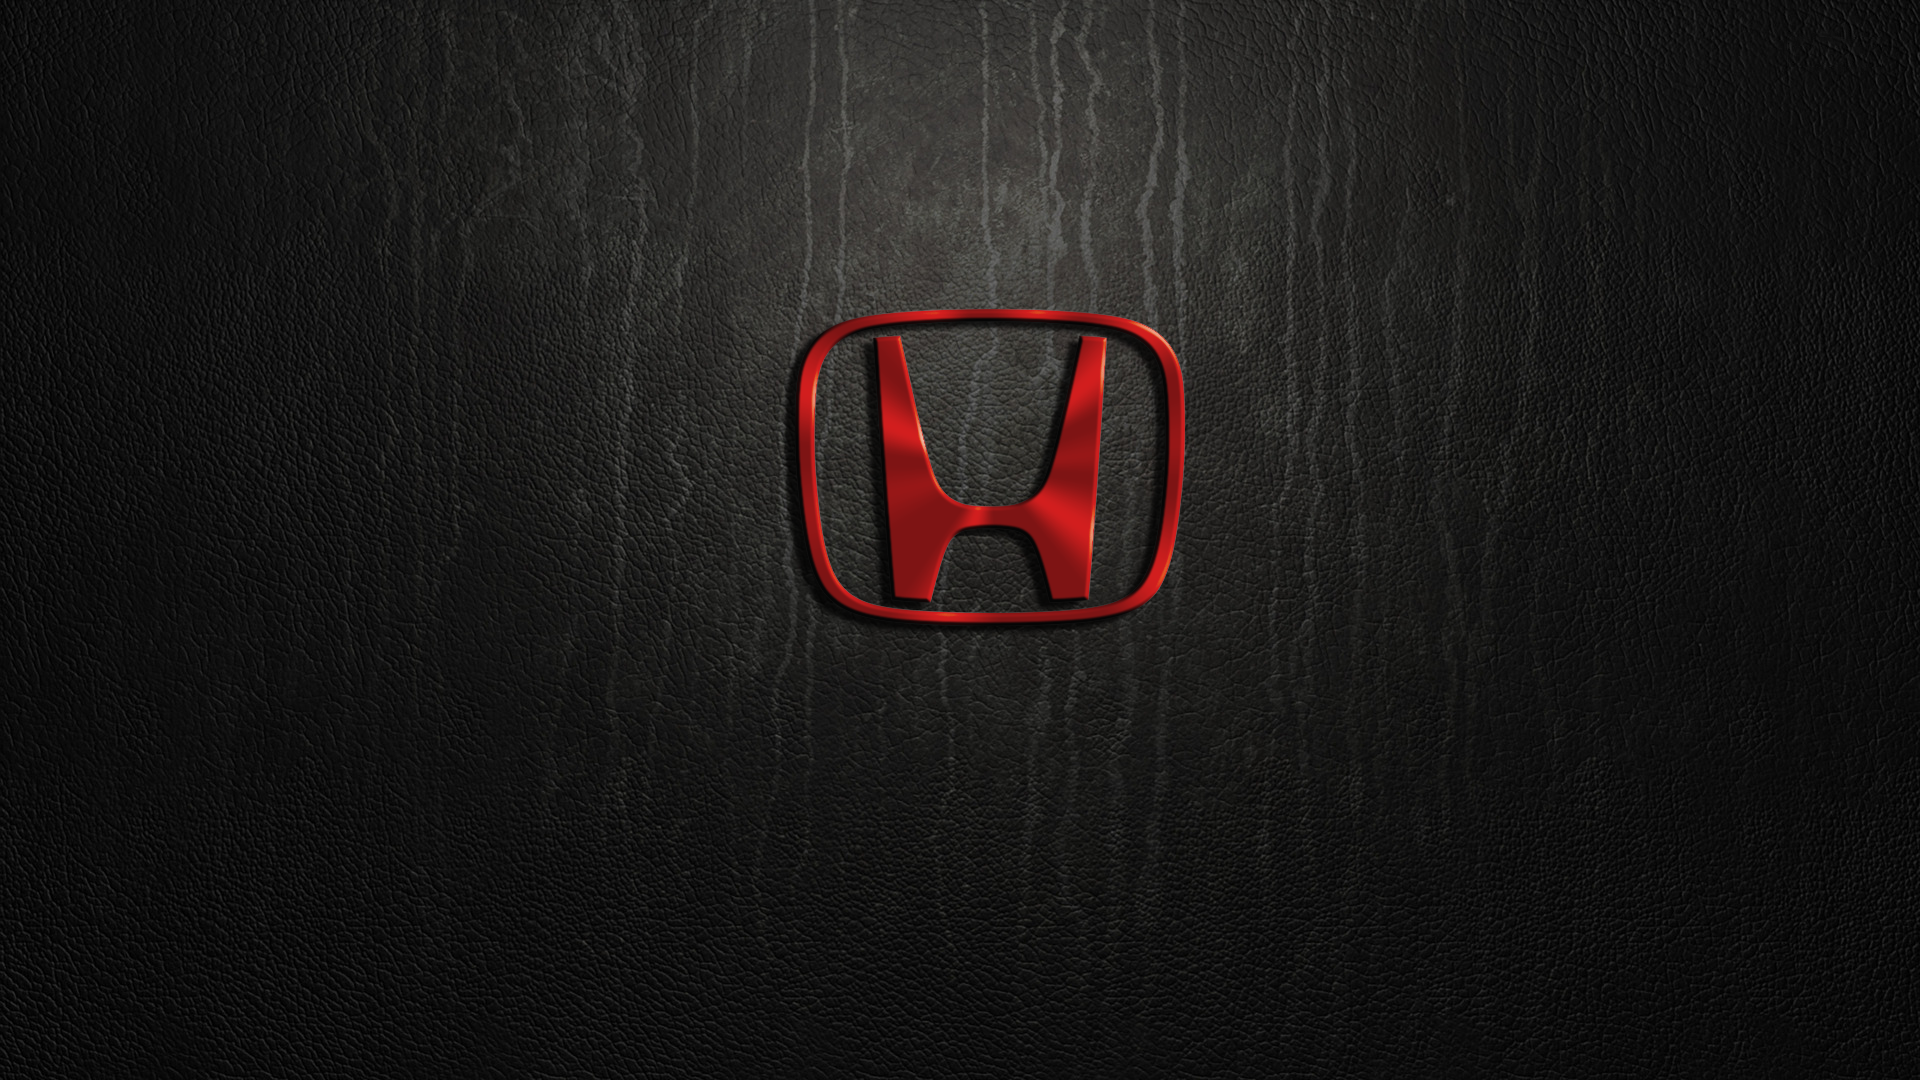 honda accord logo wallpaper. honda logo photos download free desktop wallpaper images u0026 pictures accord d